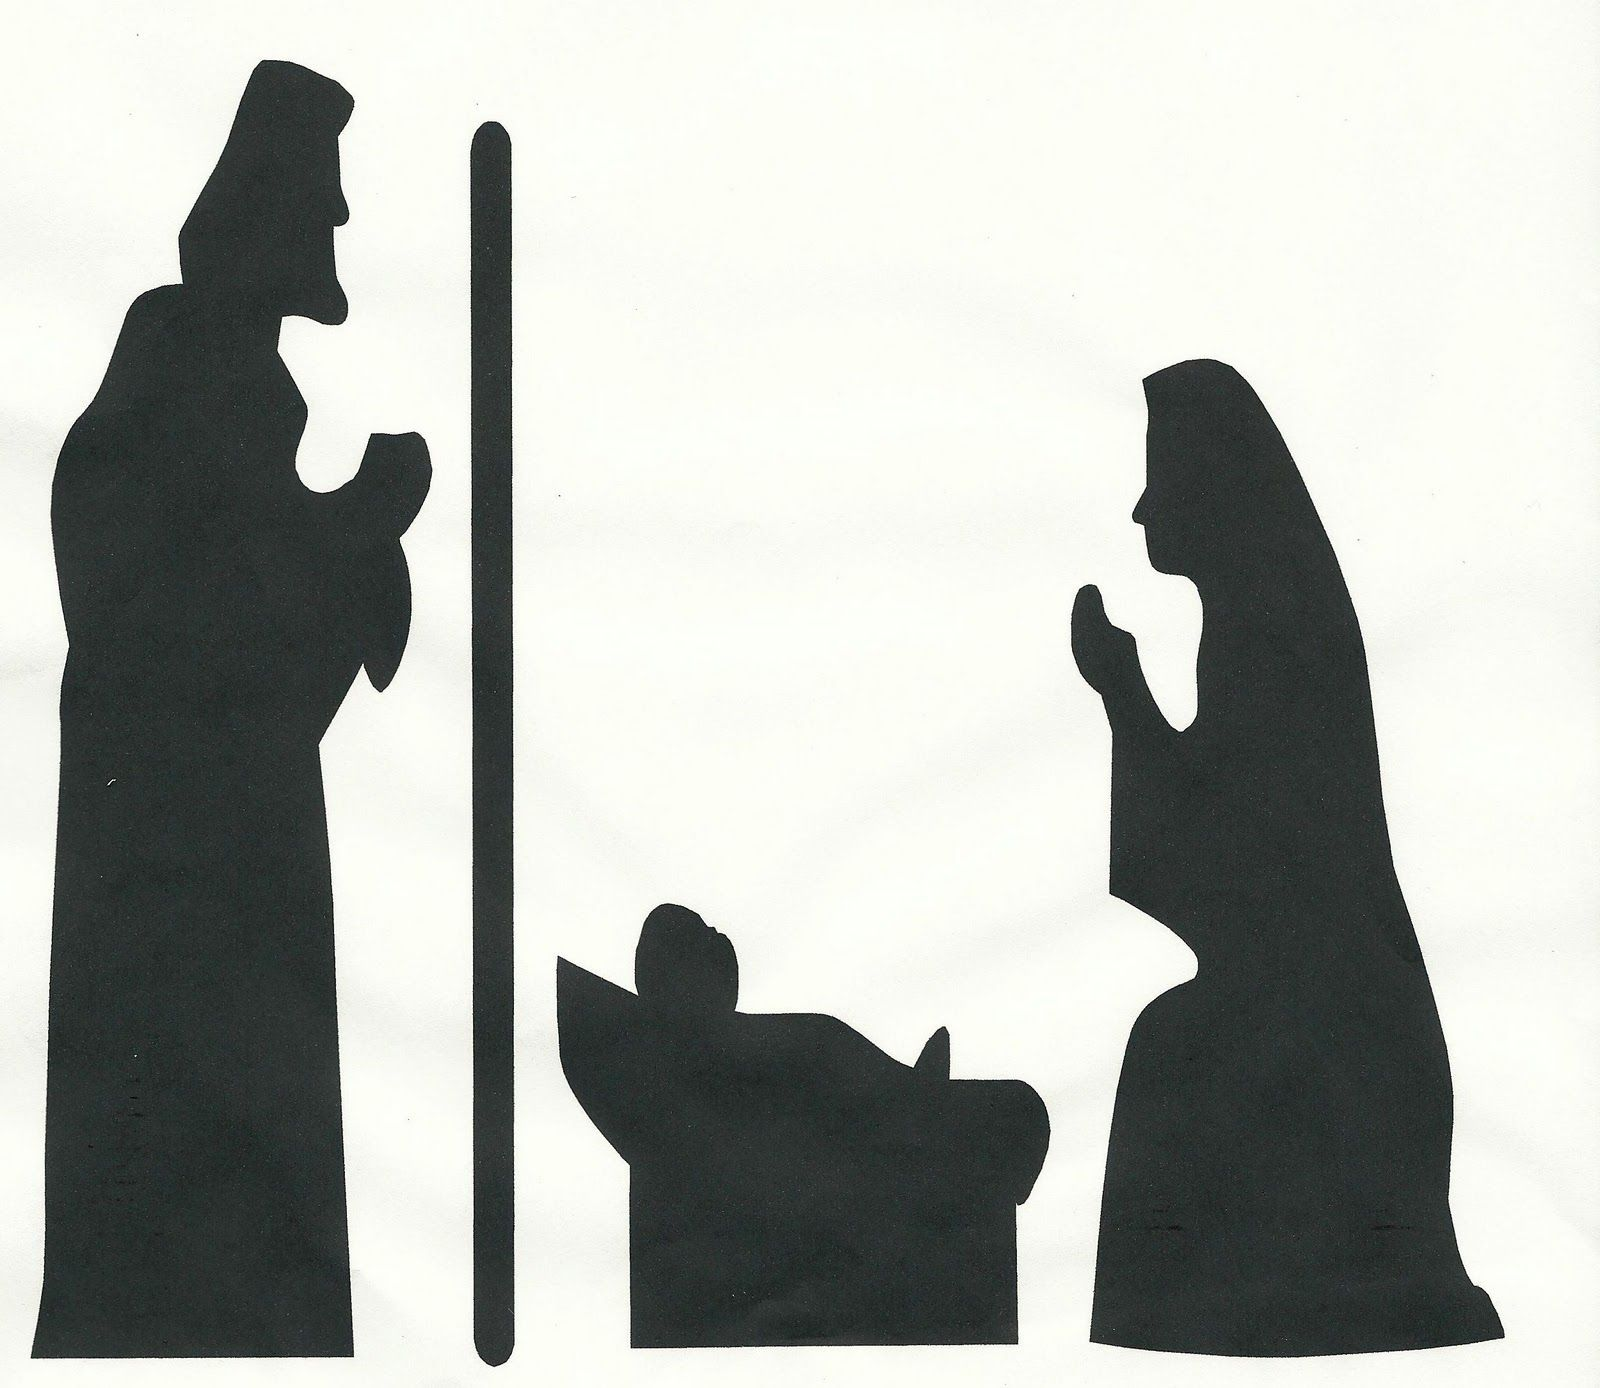 10 best navidad images on Pinterest | Nativity silhouette ...